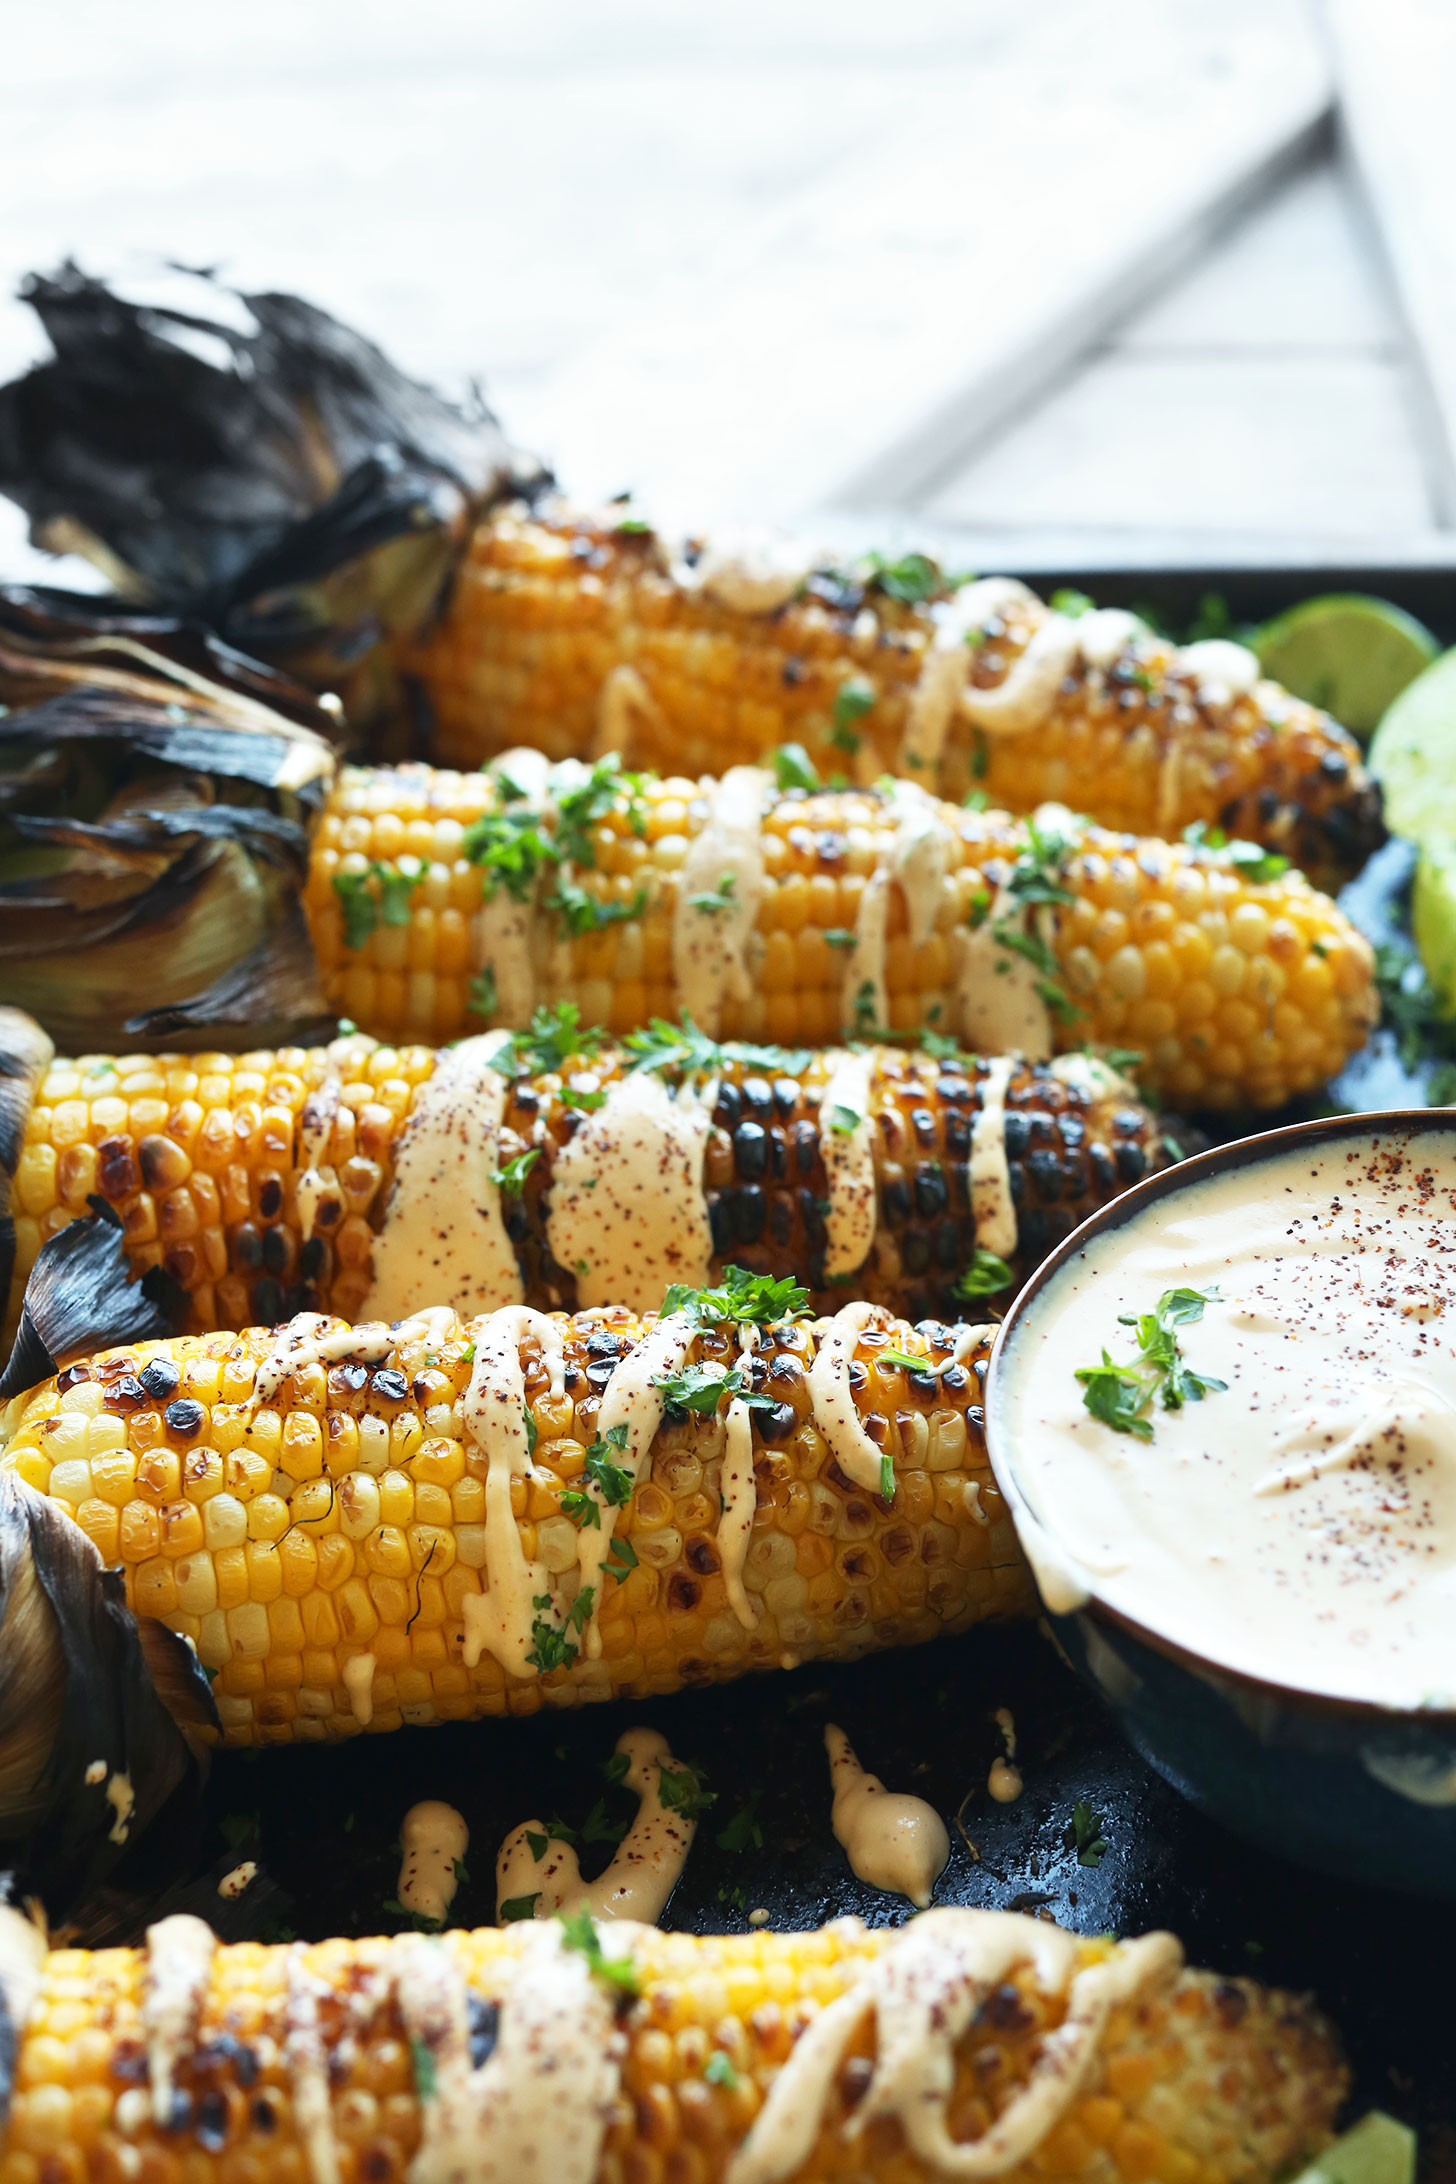 Cobs of Mexican Grilled Corn with a bowl of gluten-free vegan Sriracha Aioli